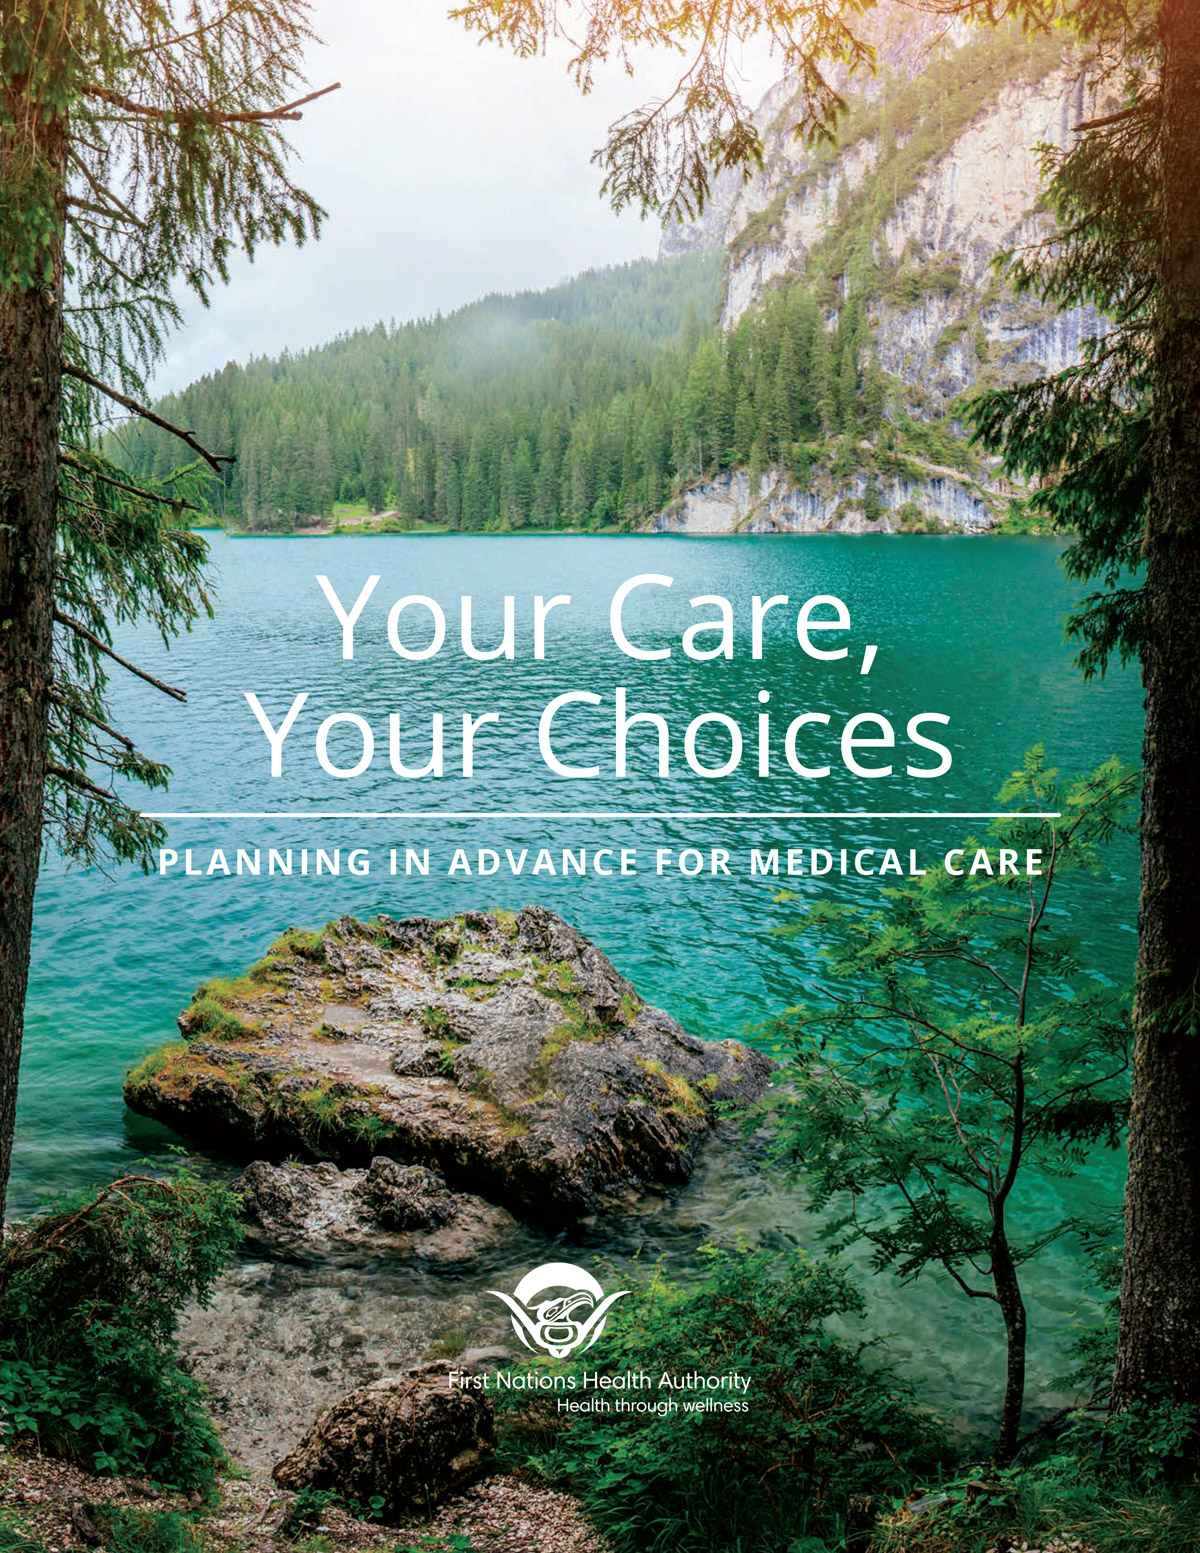 FNHA-Your-Care-Your-Choices-Planning-in-Advance-for-Medical-Care-Cover.jpg